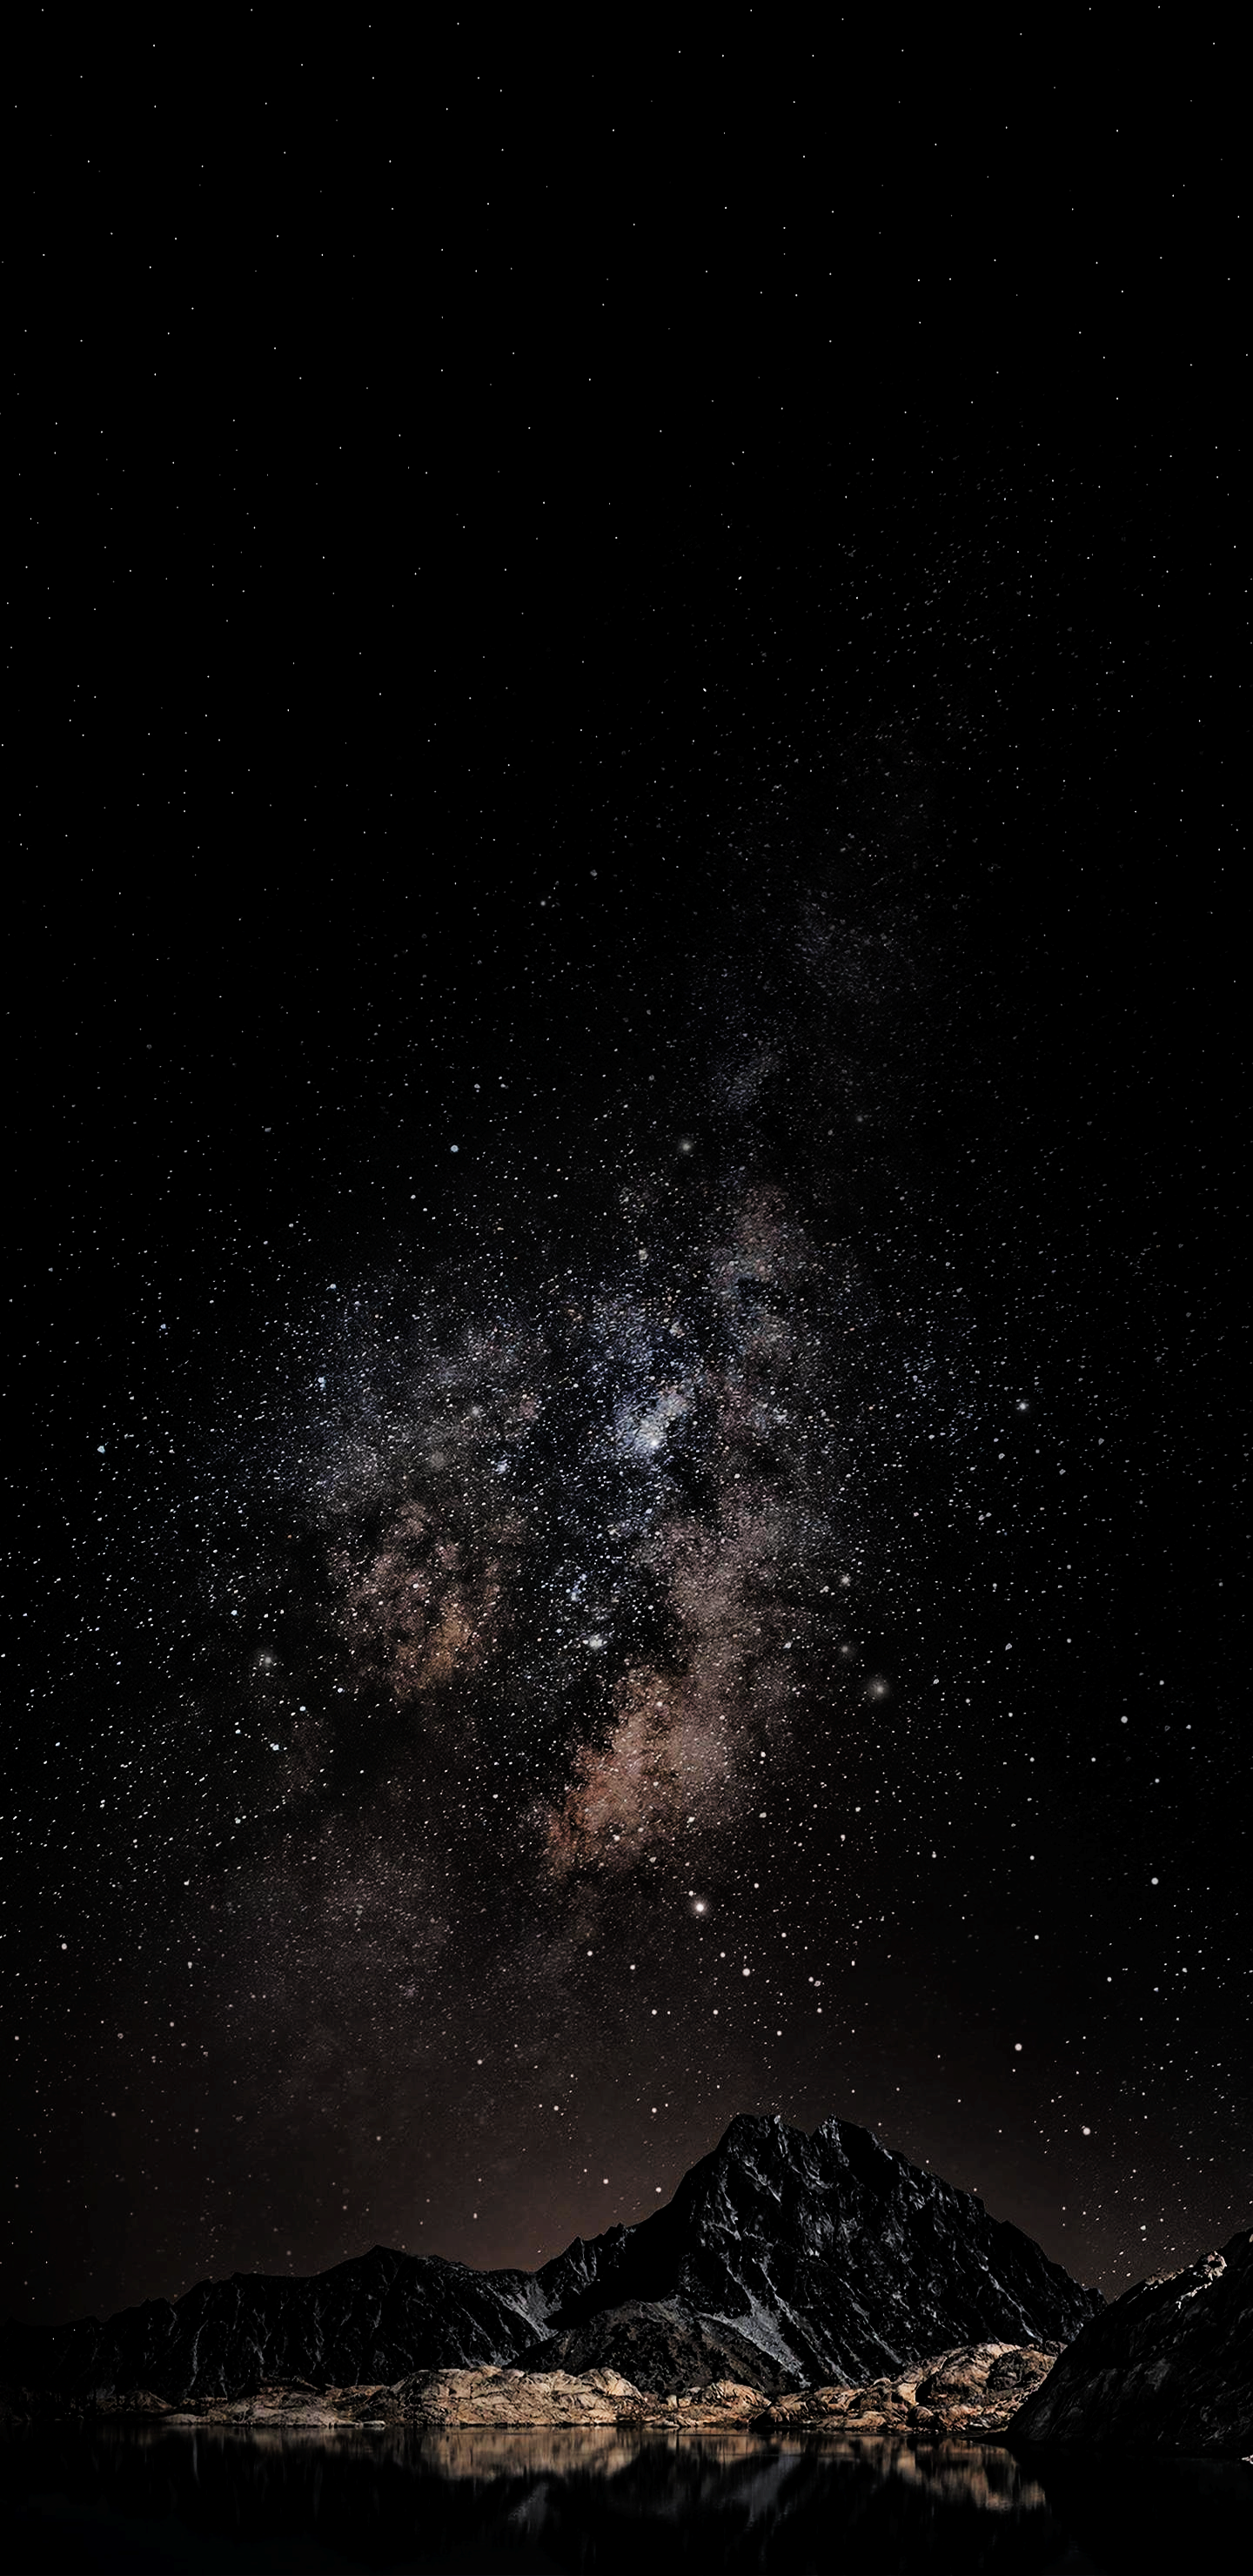 Starry Night 1440x2960 I Redd It Submitted By Deathshotcs To R Amoledbackgrounds 1 Comment Black Phone Wallpaper Black Hd Wallpaper Dark Wallpaper Iphone